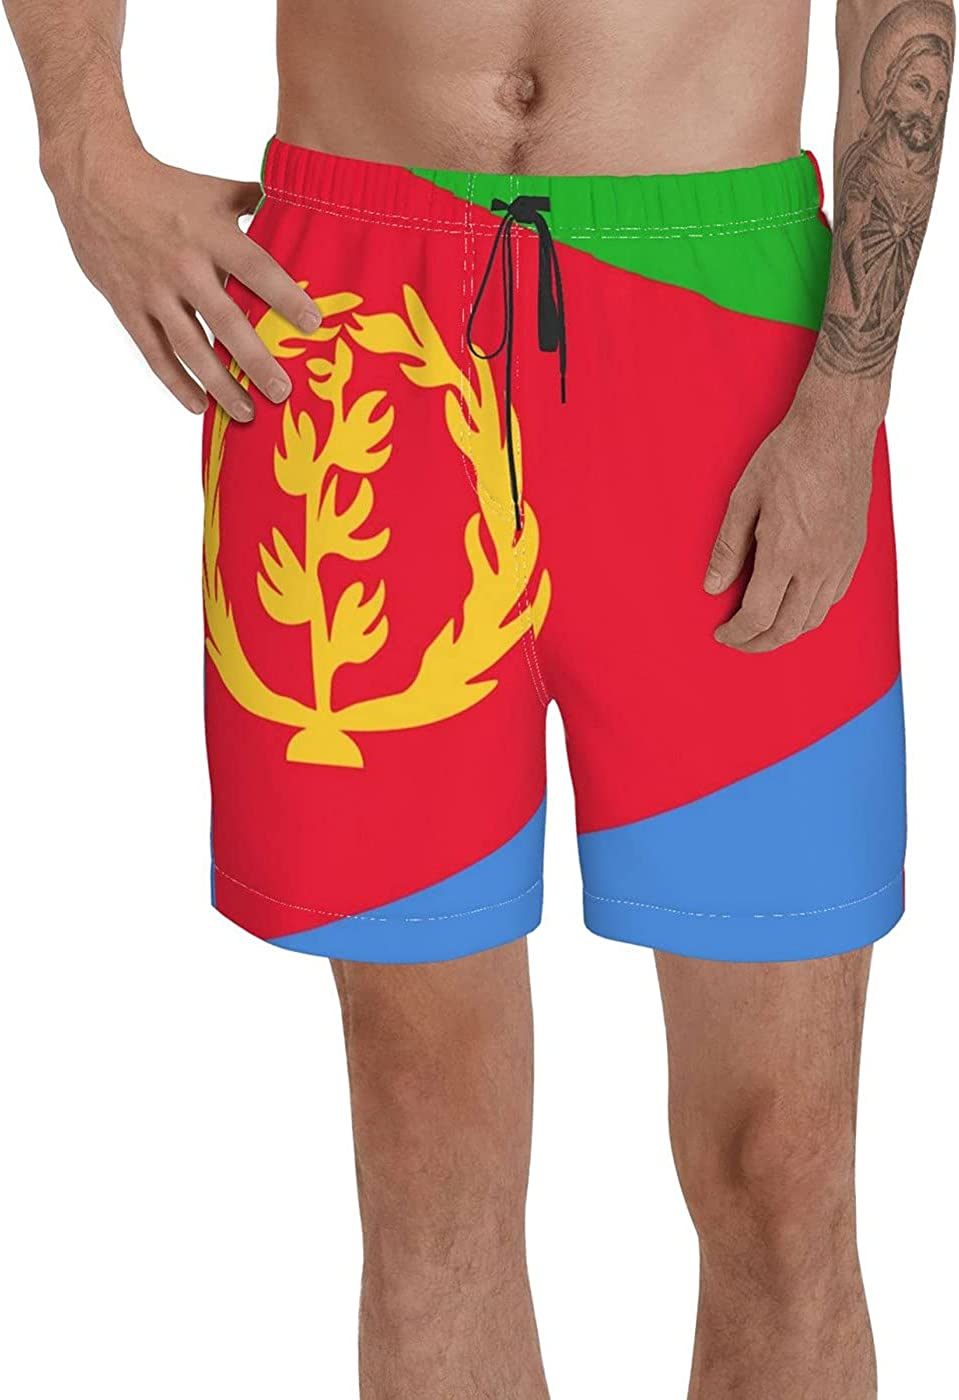 Count Eritrea Flag Men's 3D Printed Funny Summer Quick Dry Swim Short Board Shorts with